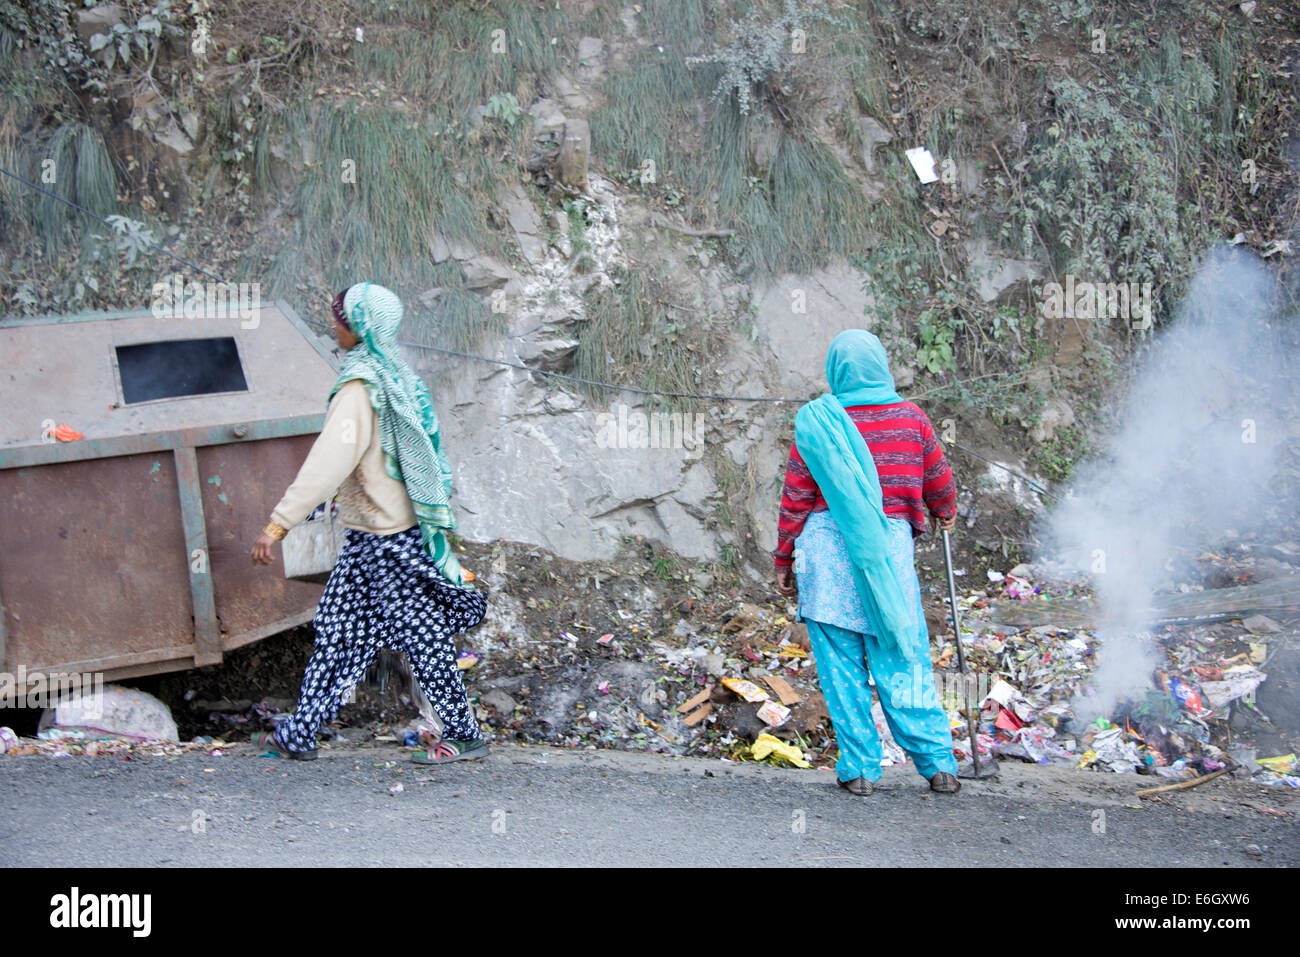 Two Asian women burning rubbish beside a main road near Shimla in Himachal Pradesh, - Stock Image